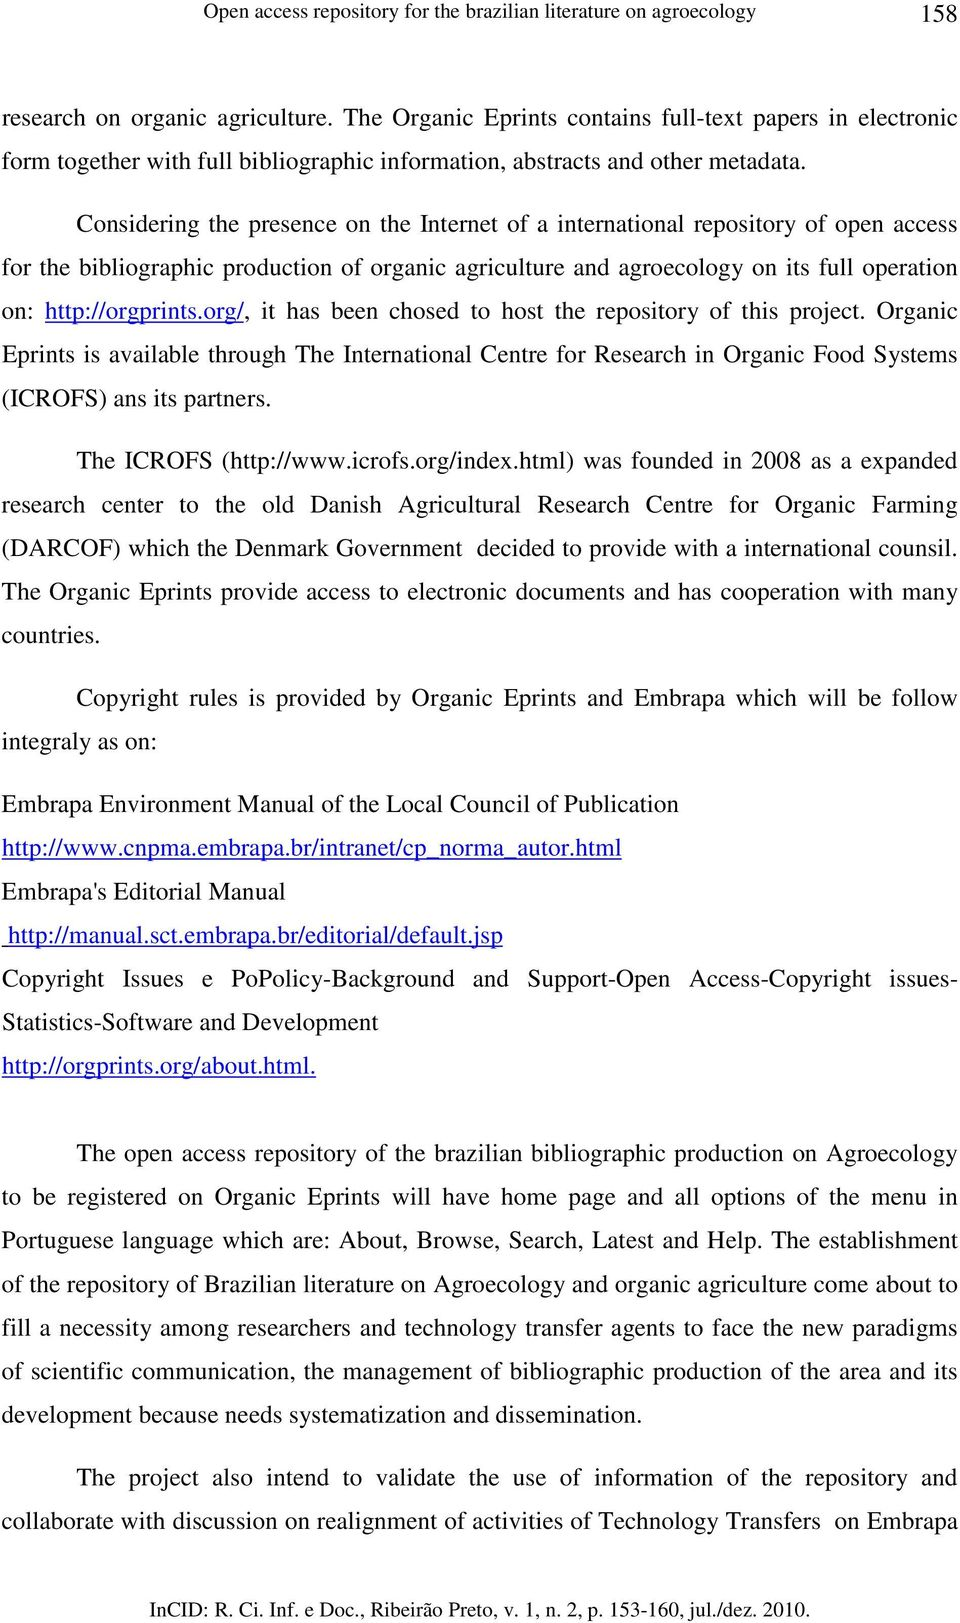 Considering the presence on the Internet of a international repository of open access for the bibliographic production of organic agriculture and agroecology on its full operation on: